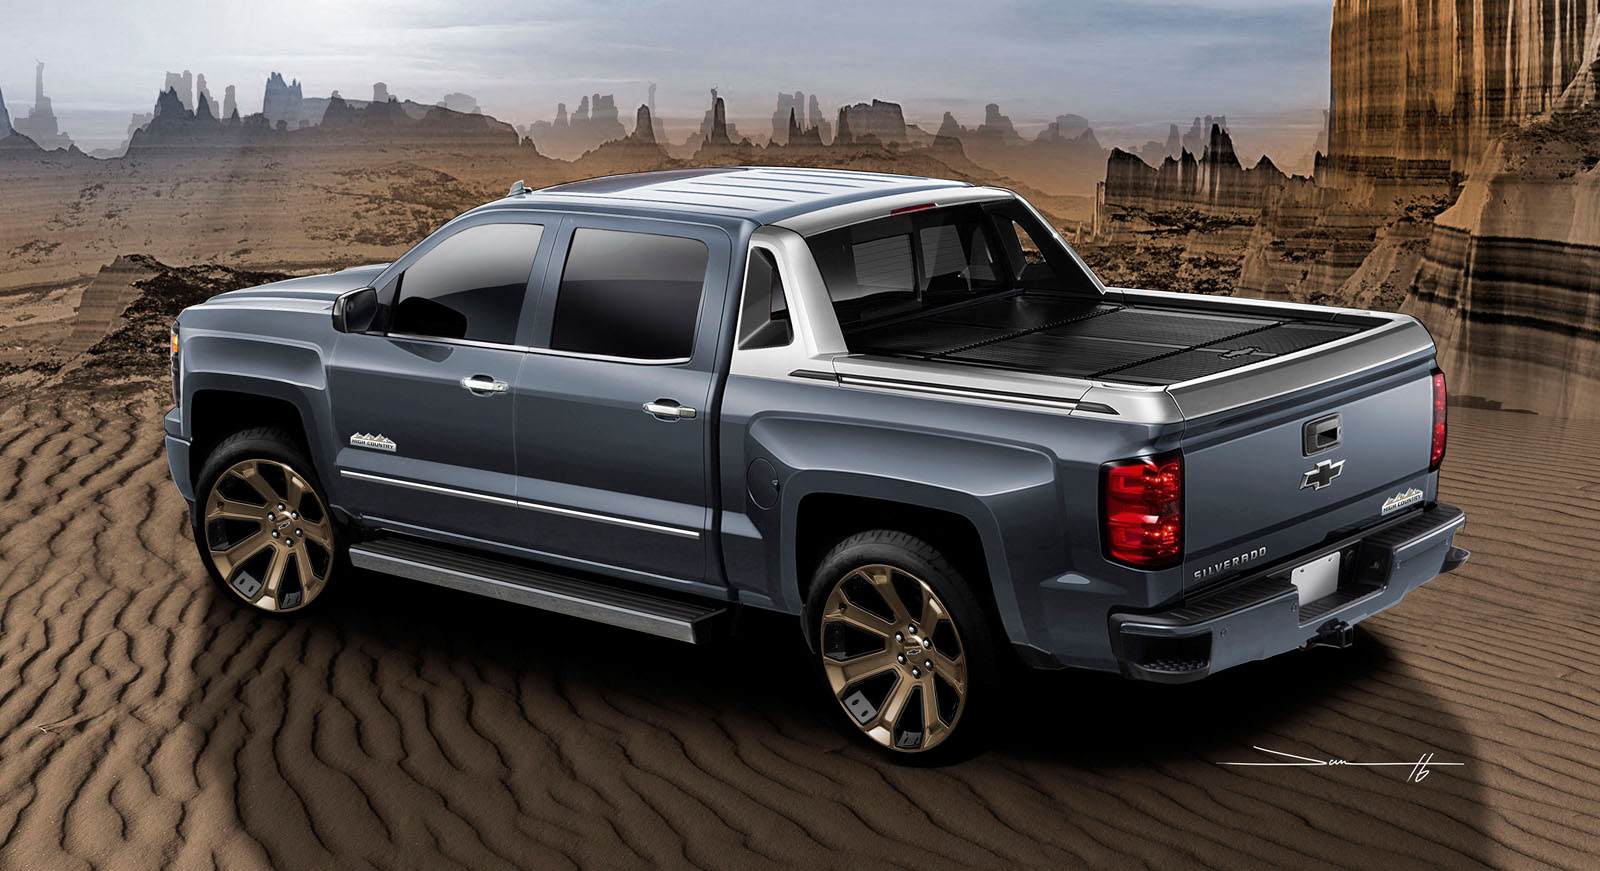 Chevy Show Trucks Tackle The Sand To Get To SEMA